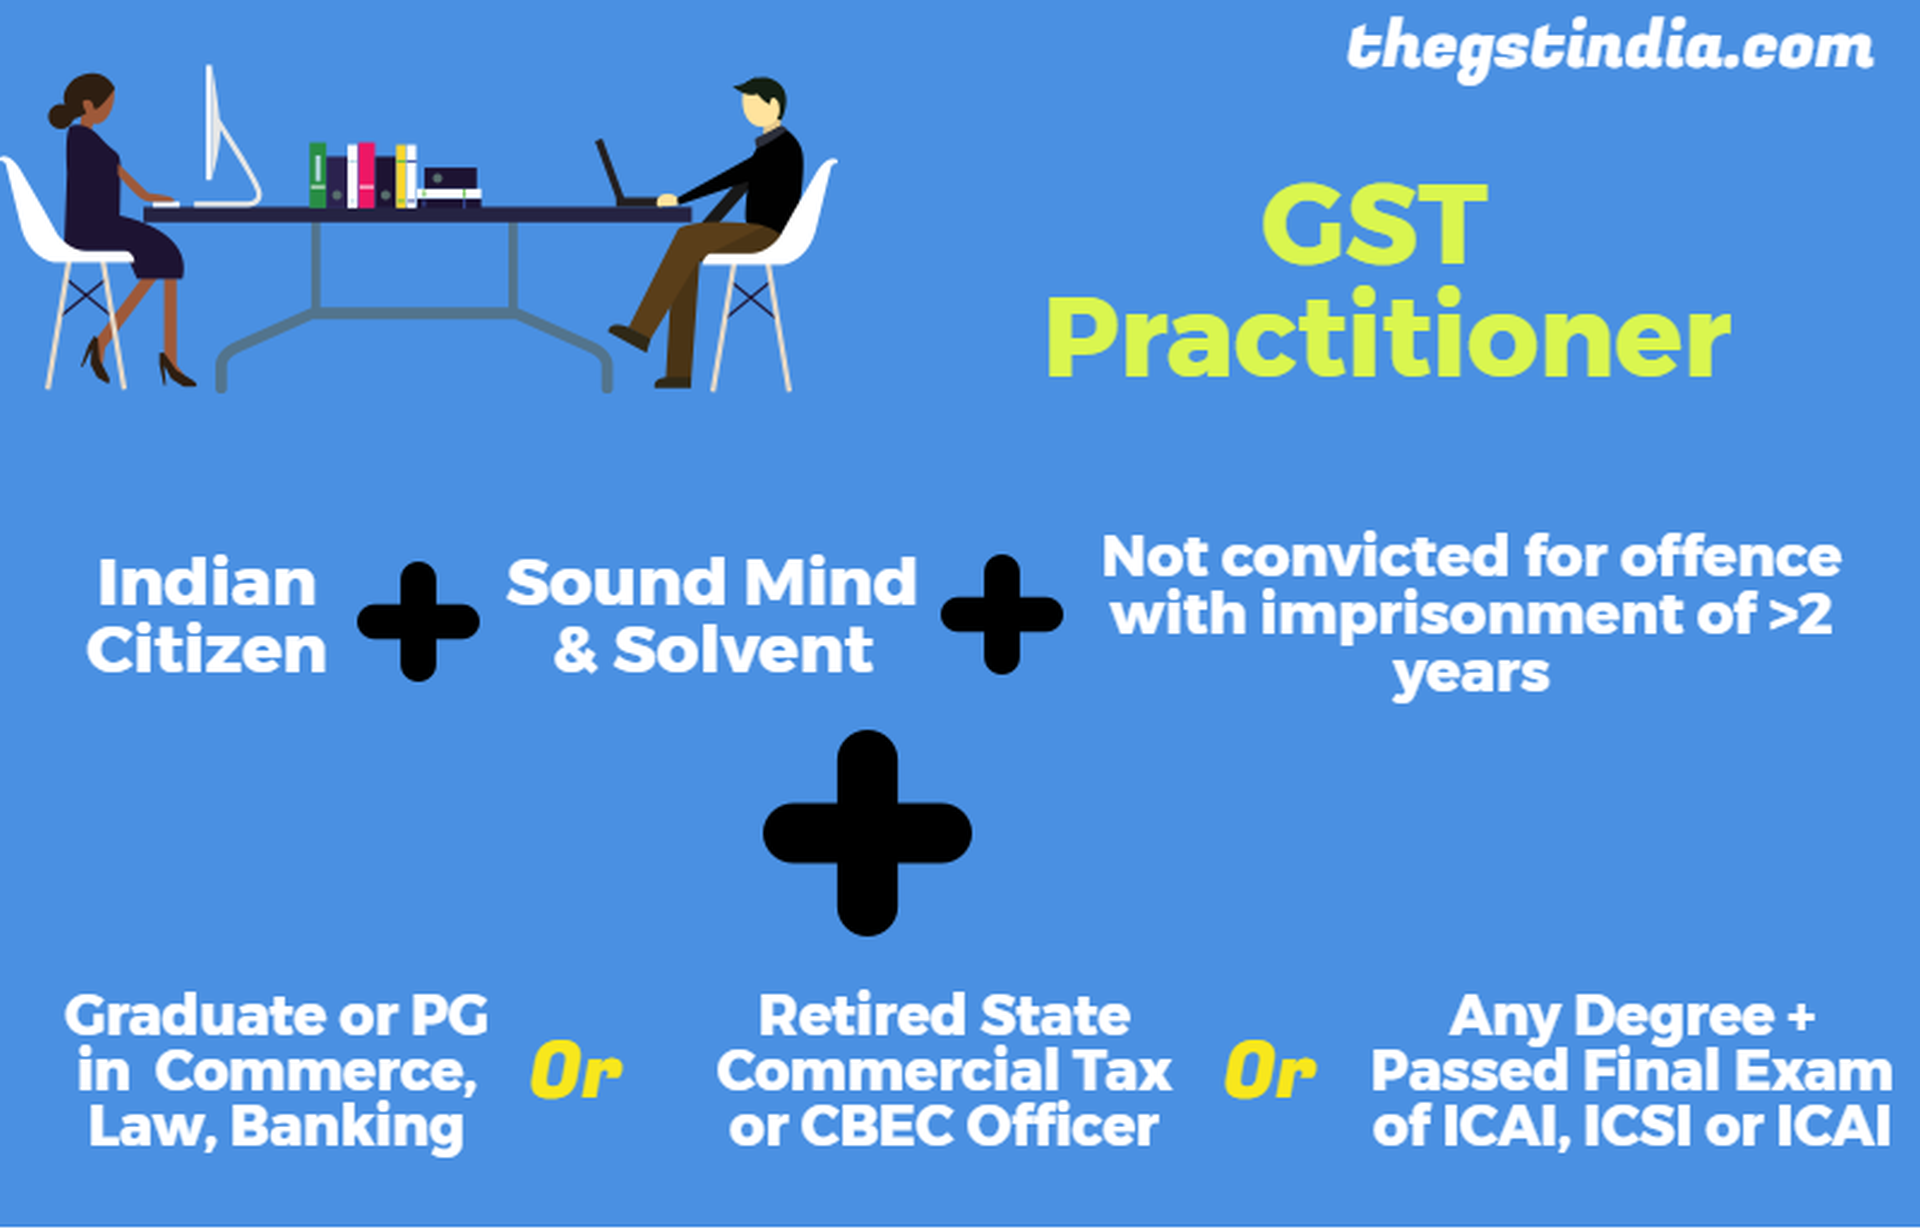 Am I eligible to become a GST practitioner?